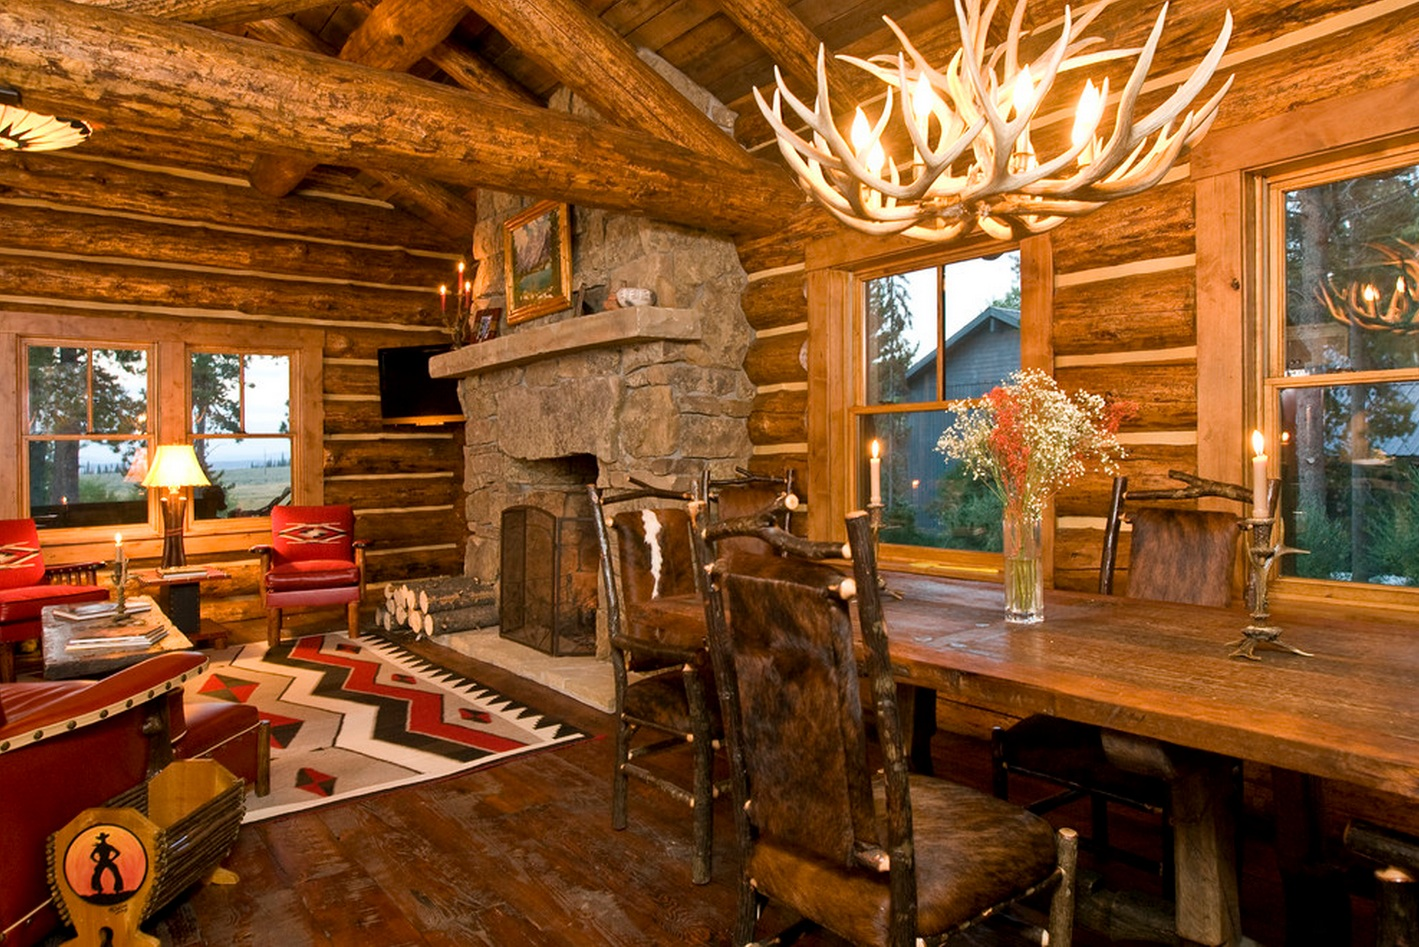 Rustic Log Home Decor: Cute & Cosy Cabin: Beautifully Warm Home Has Traditional